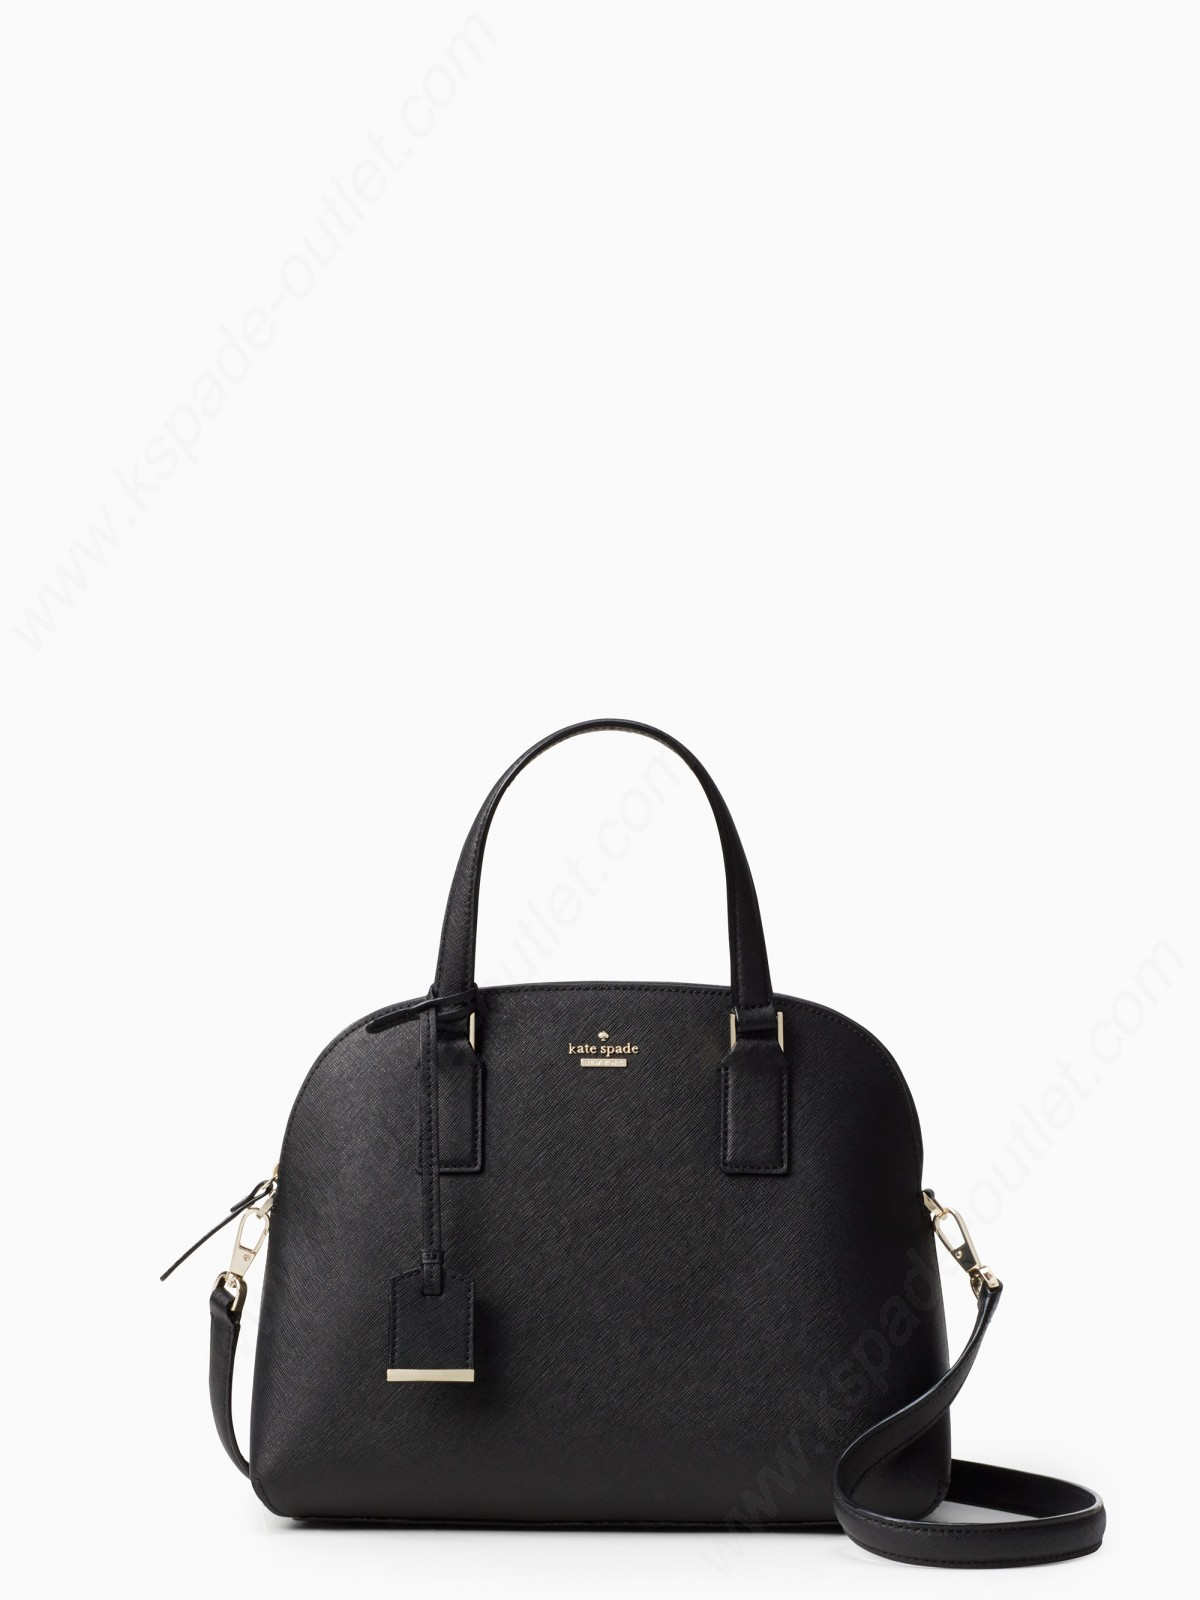 Kate Spade Woman Bag Cameron Street Lottie - -0